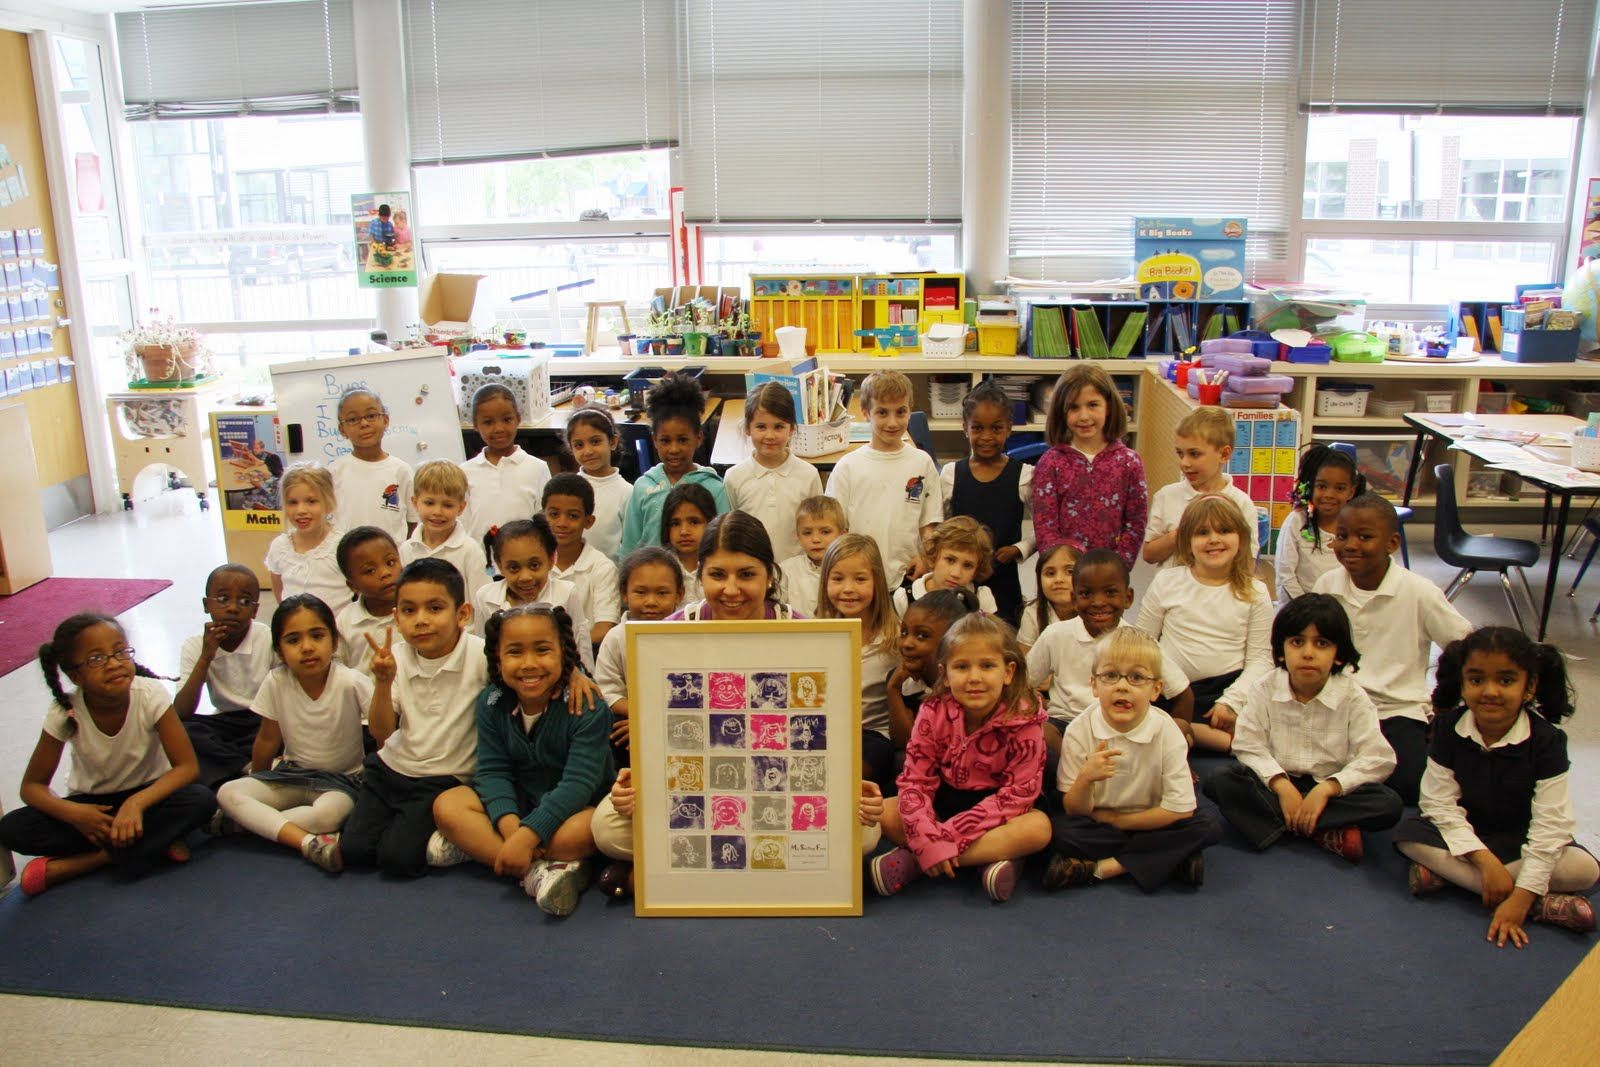 1st grade photo wall school auction art projects